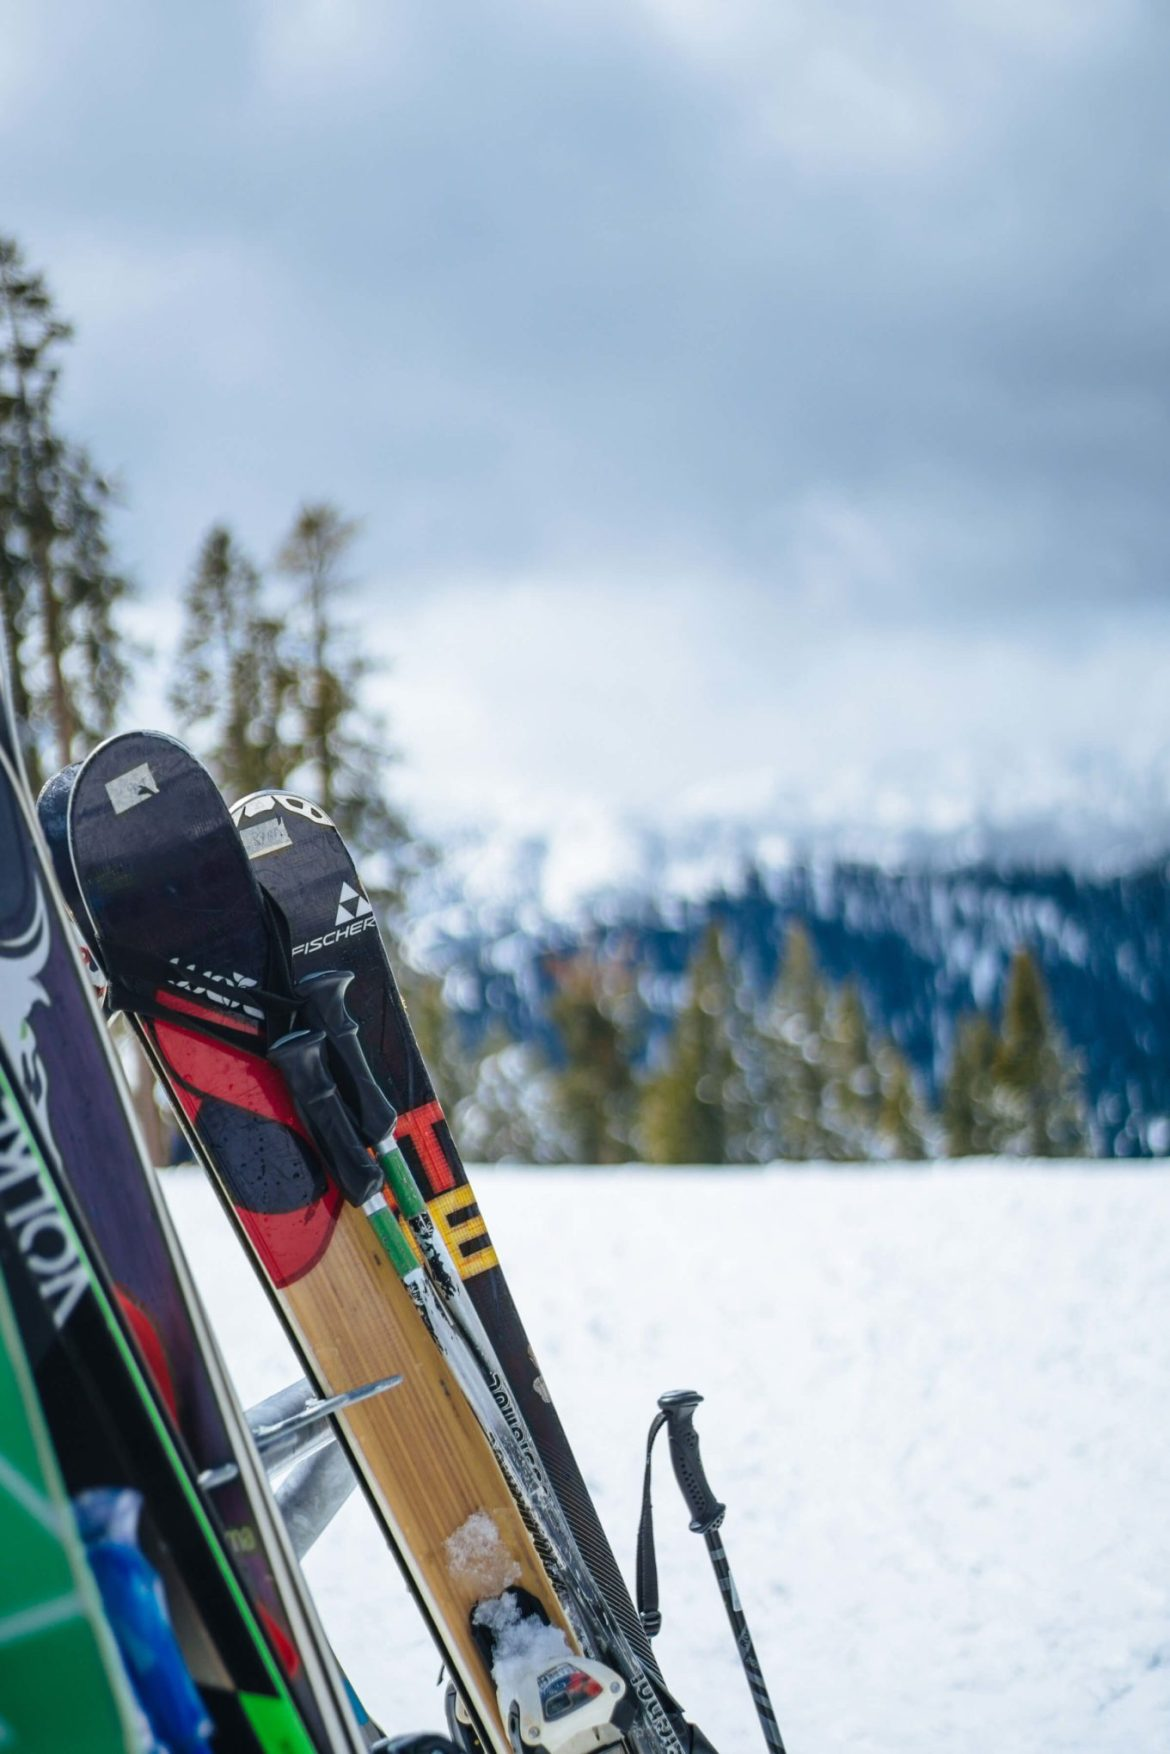 The best place to ski or snowboard in luxury and style in Tahoe is at Northstar California and The Ritz-Carlton hotel, The Taste Edit